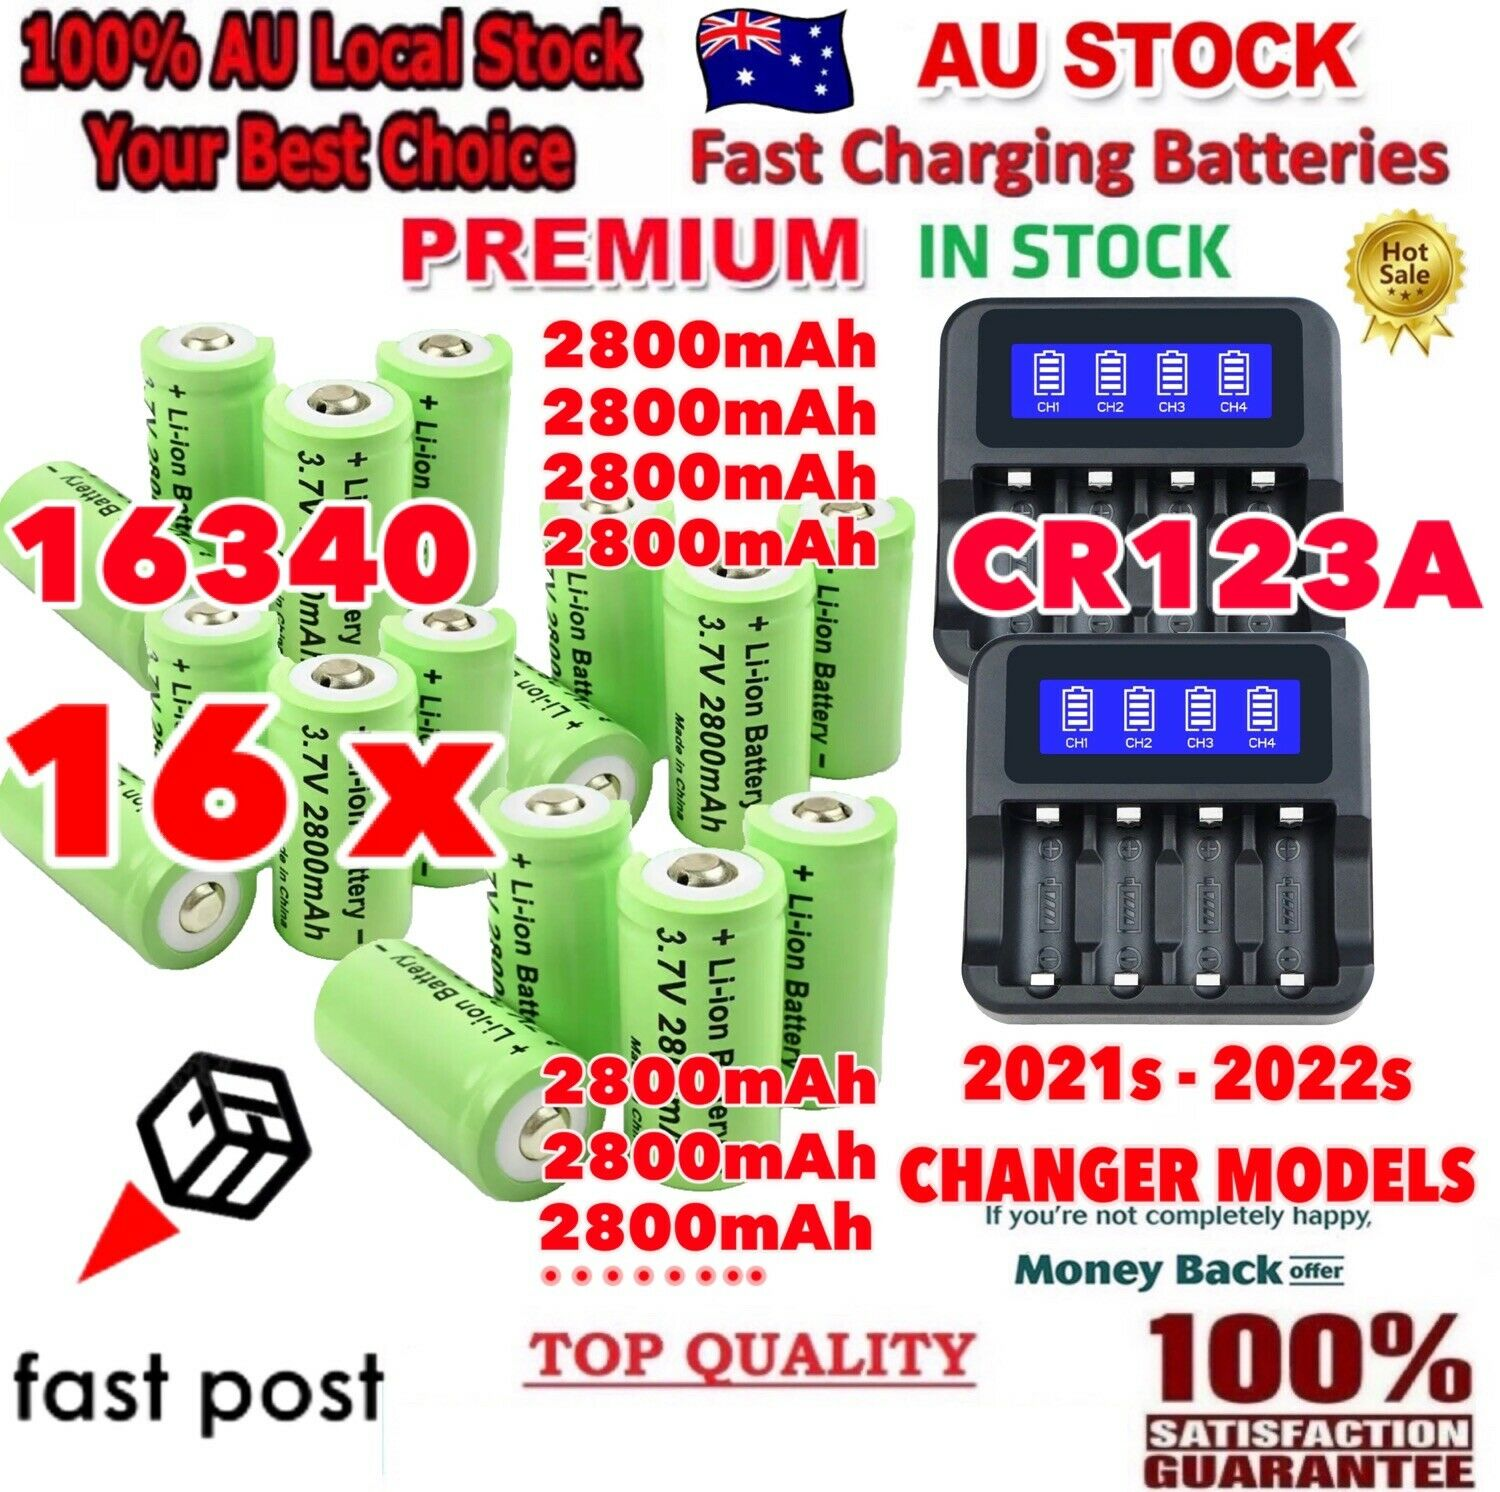 16PC 2800mAh 16340 CR123A 3.7V Rechargeable Battery + 2PC x USB Charger for Arlo